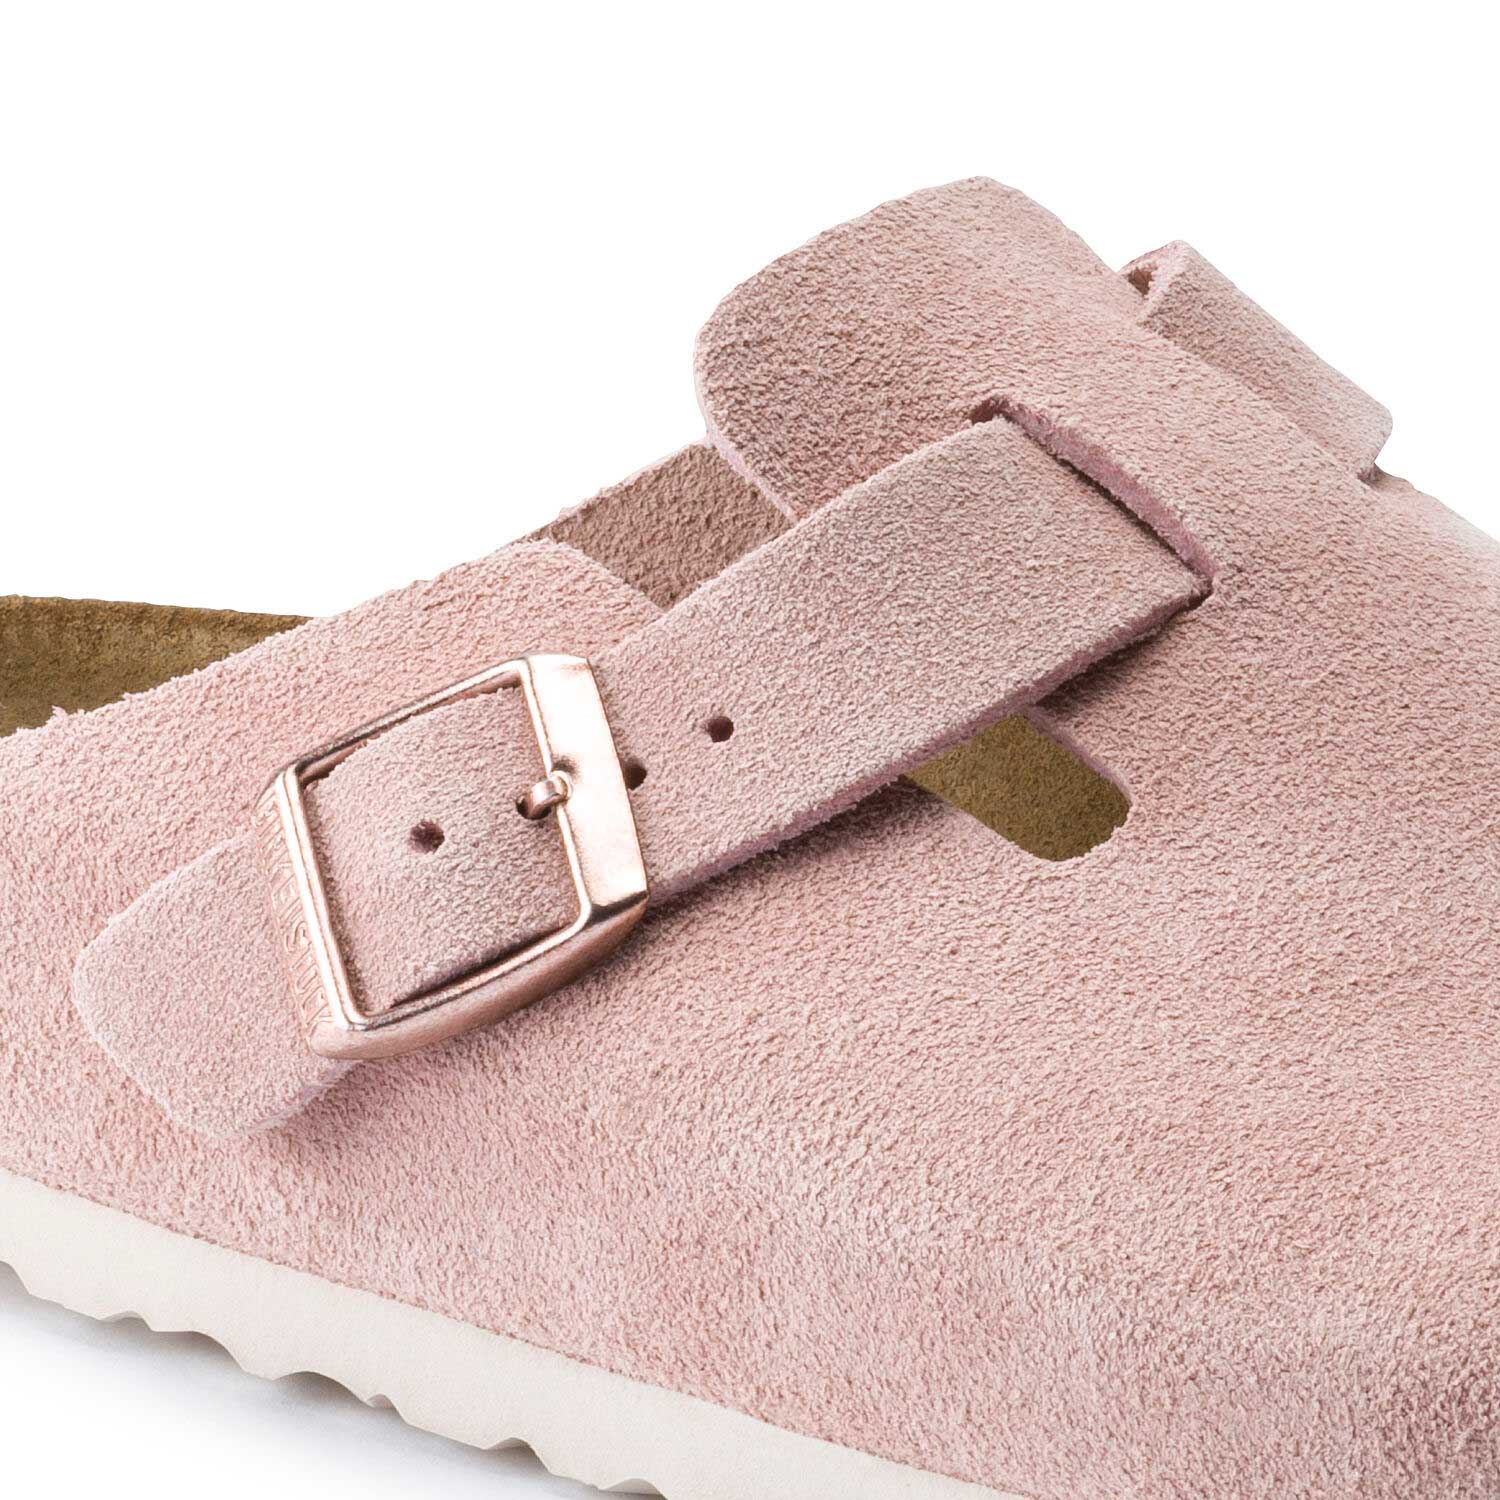 Birkenstock Boston VL Light Rose Narrow